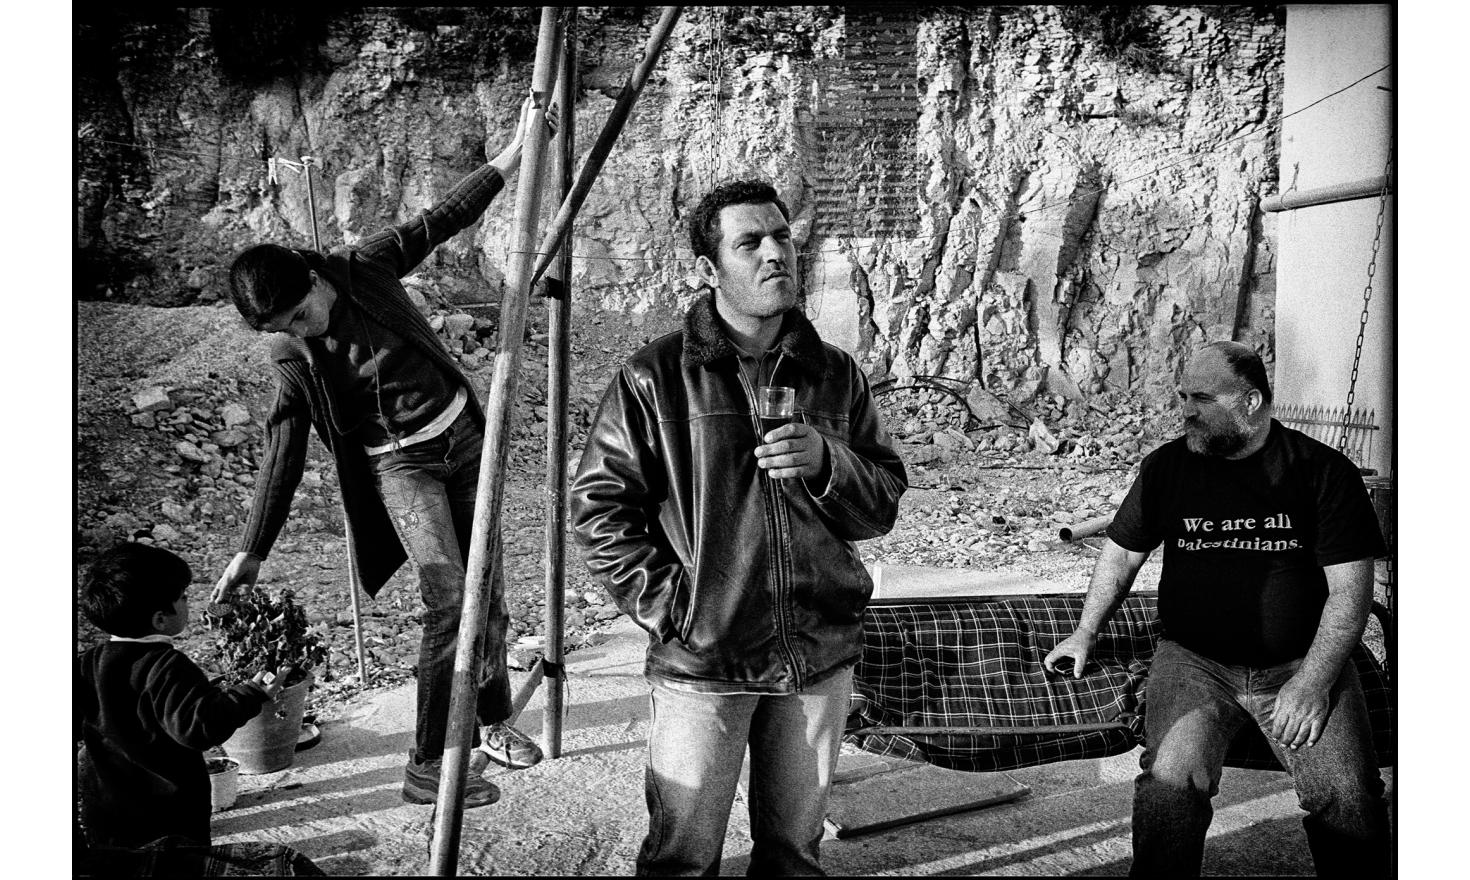 """Palestinian members of the""""Circle of Parents""""association, which brings together Israeli and palestinian parents who have lost a loved one in the conflict. Beit Umar. West Bank. April 2005."""